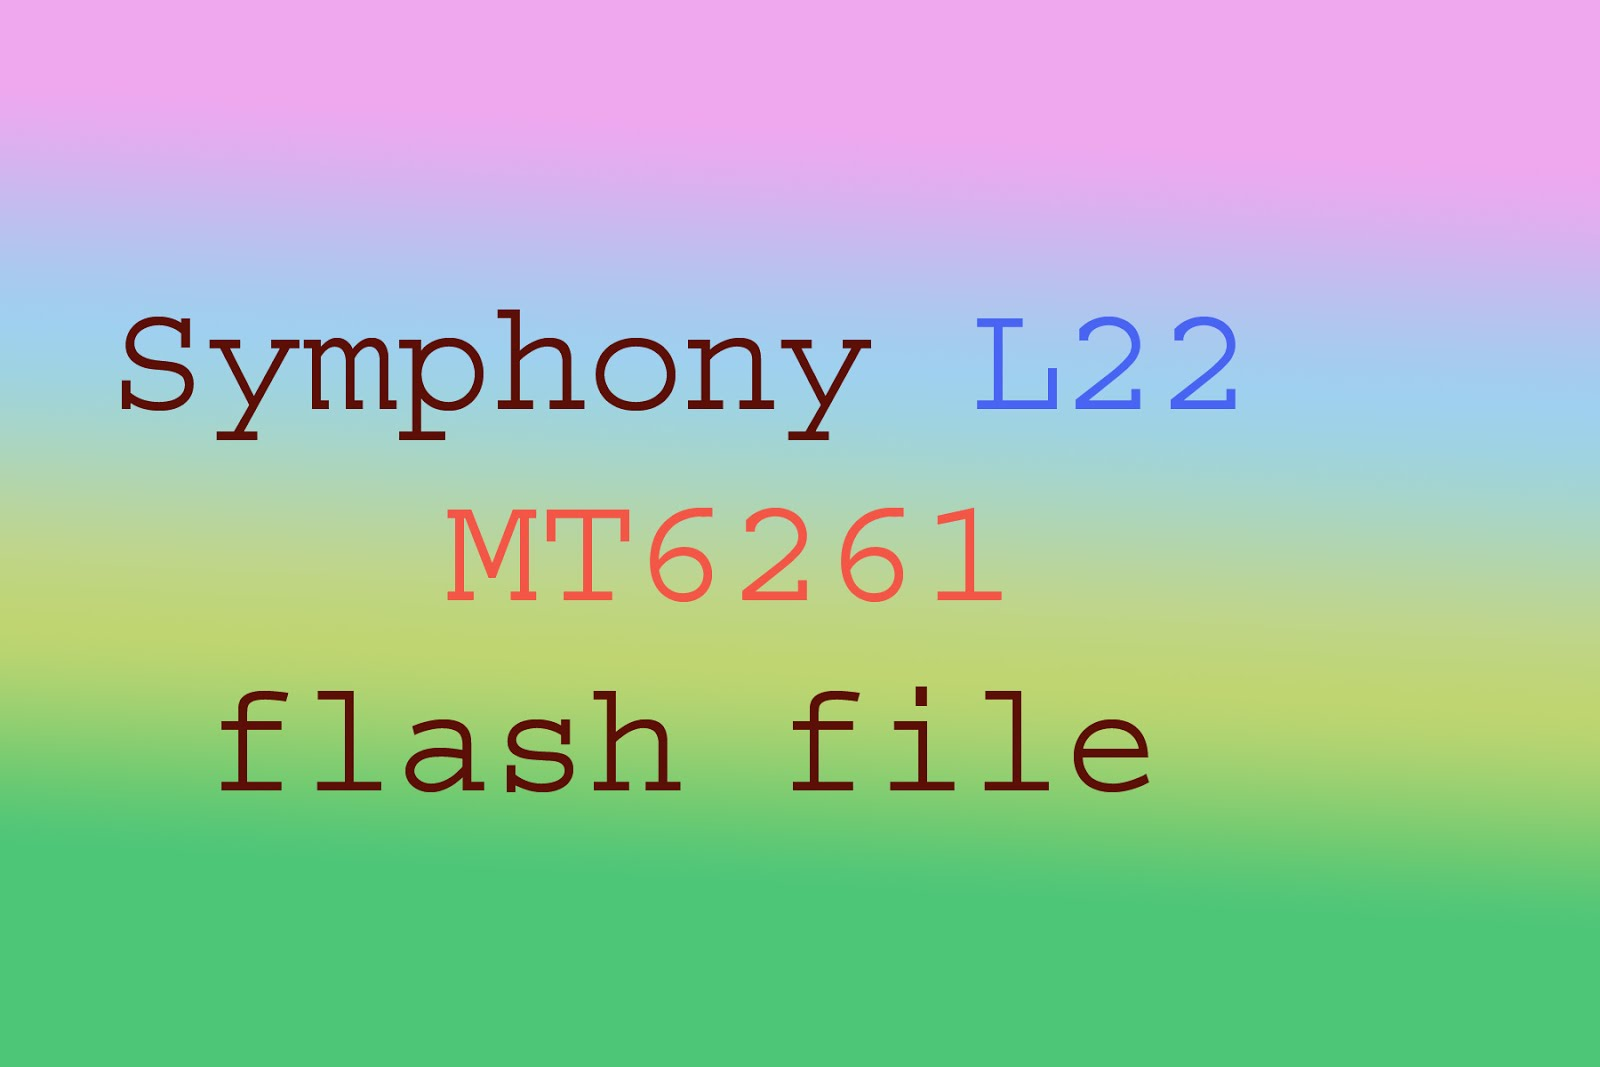 Symphony L22 MT6261 firmware file 100% tested